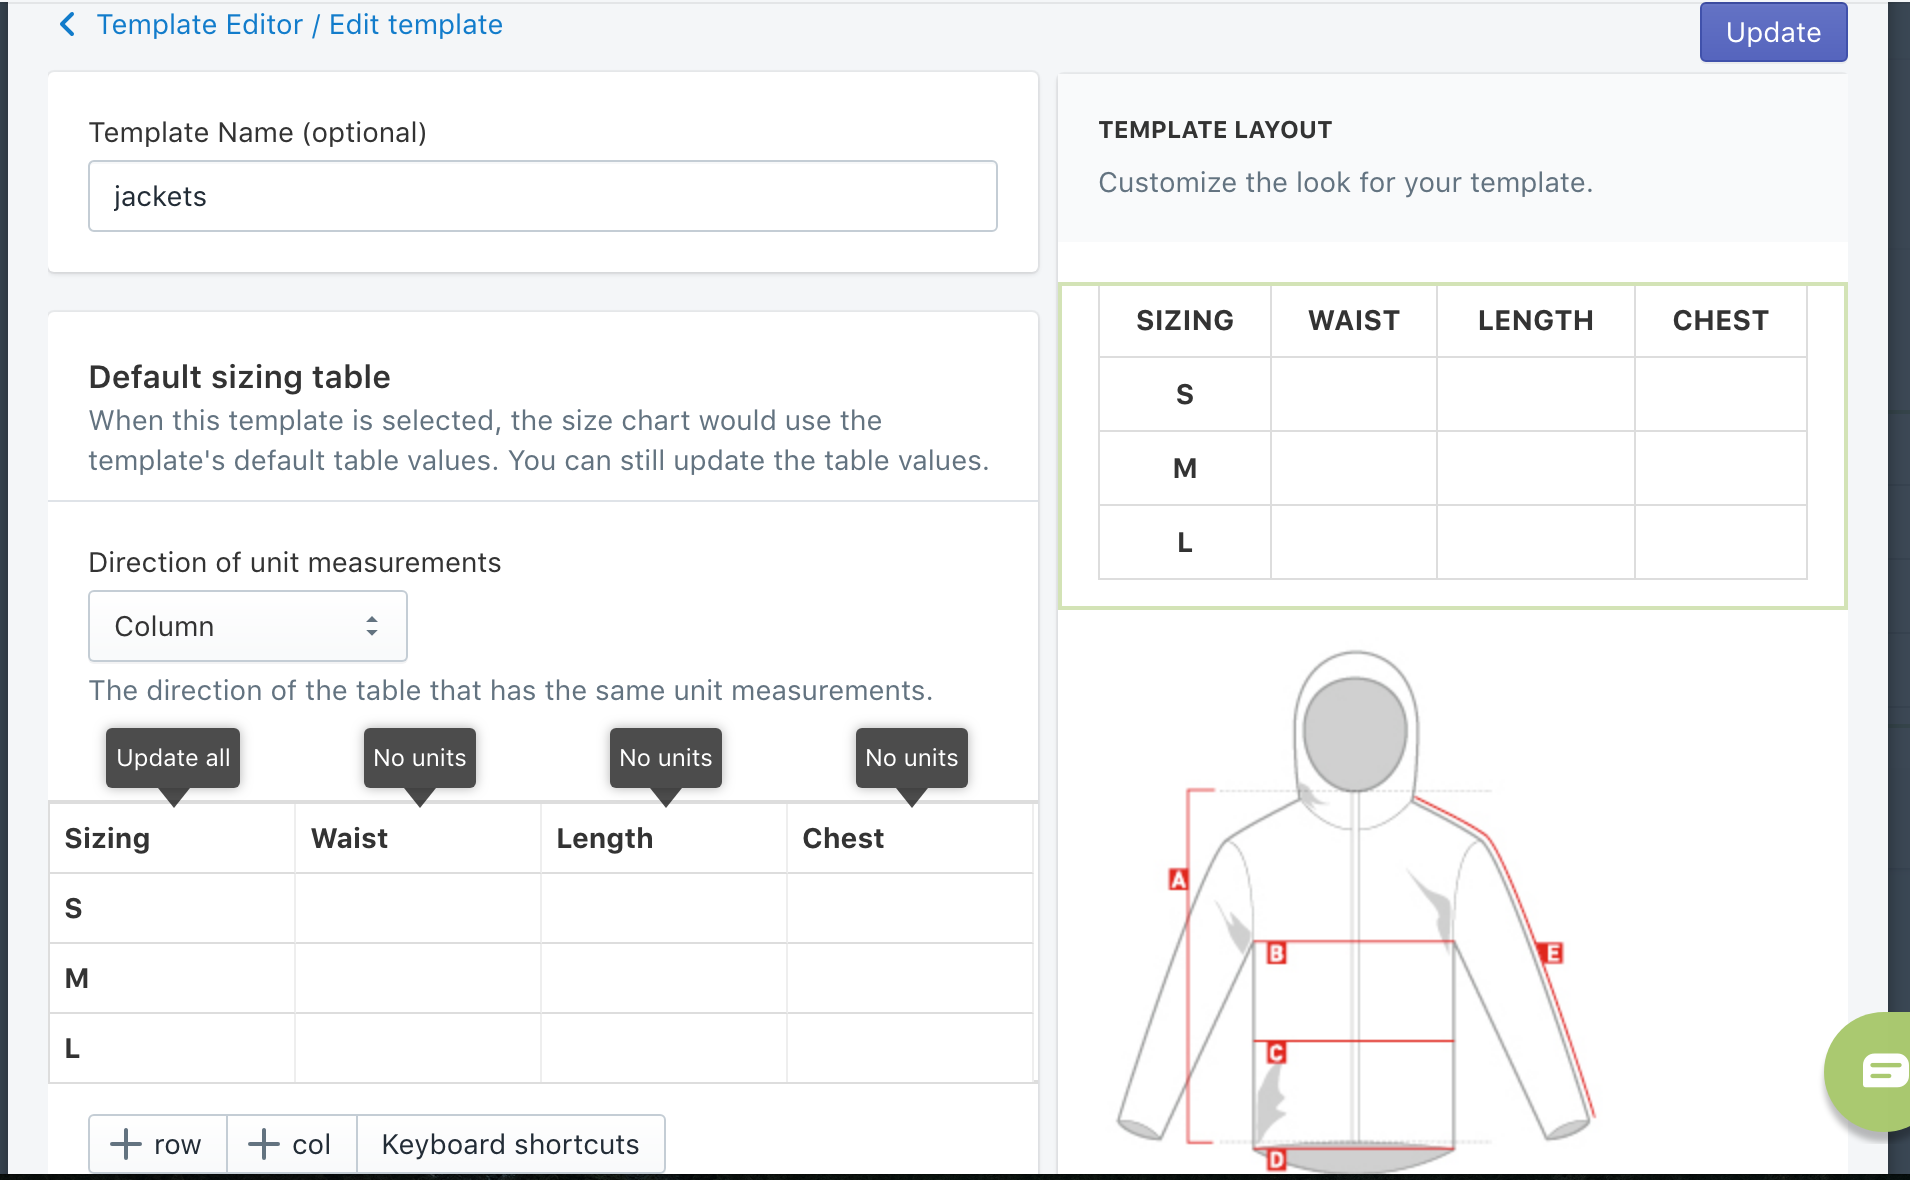 Kiwi Sizing - Sizing plugin for Shopify and e-commerce platforms